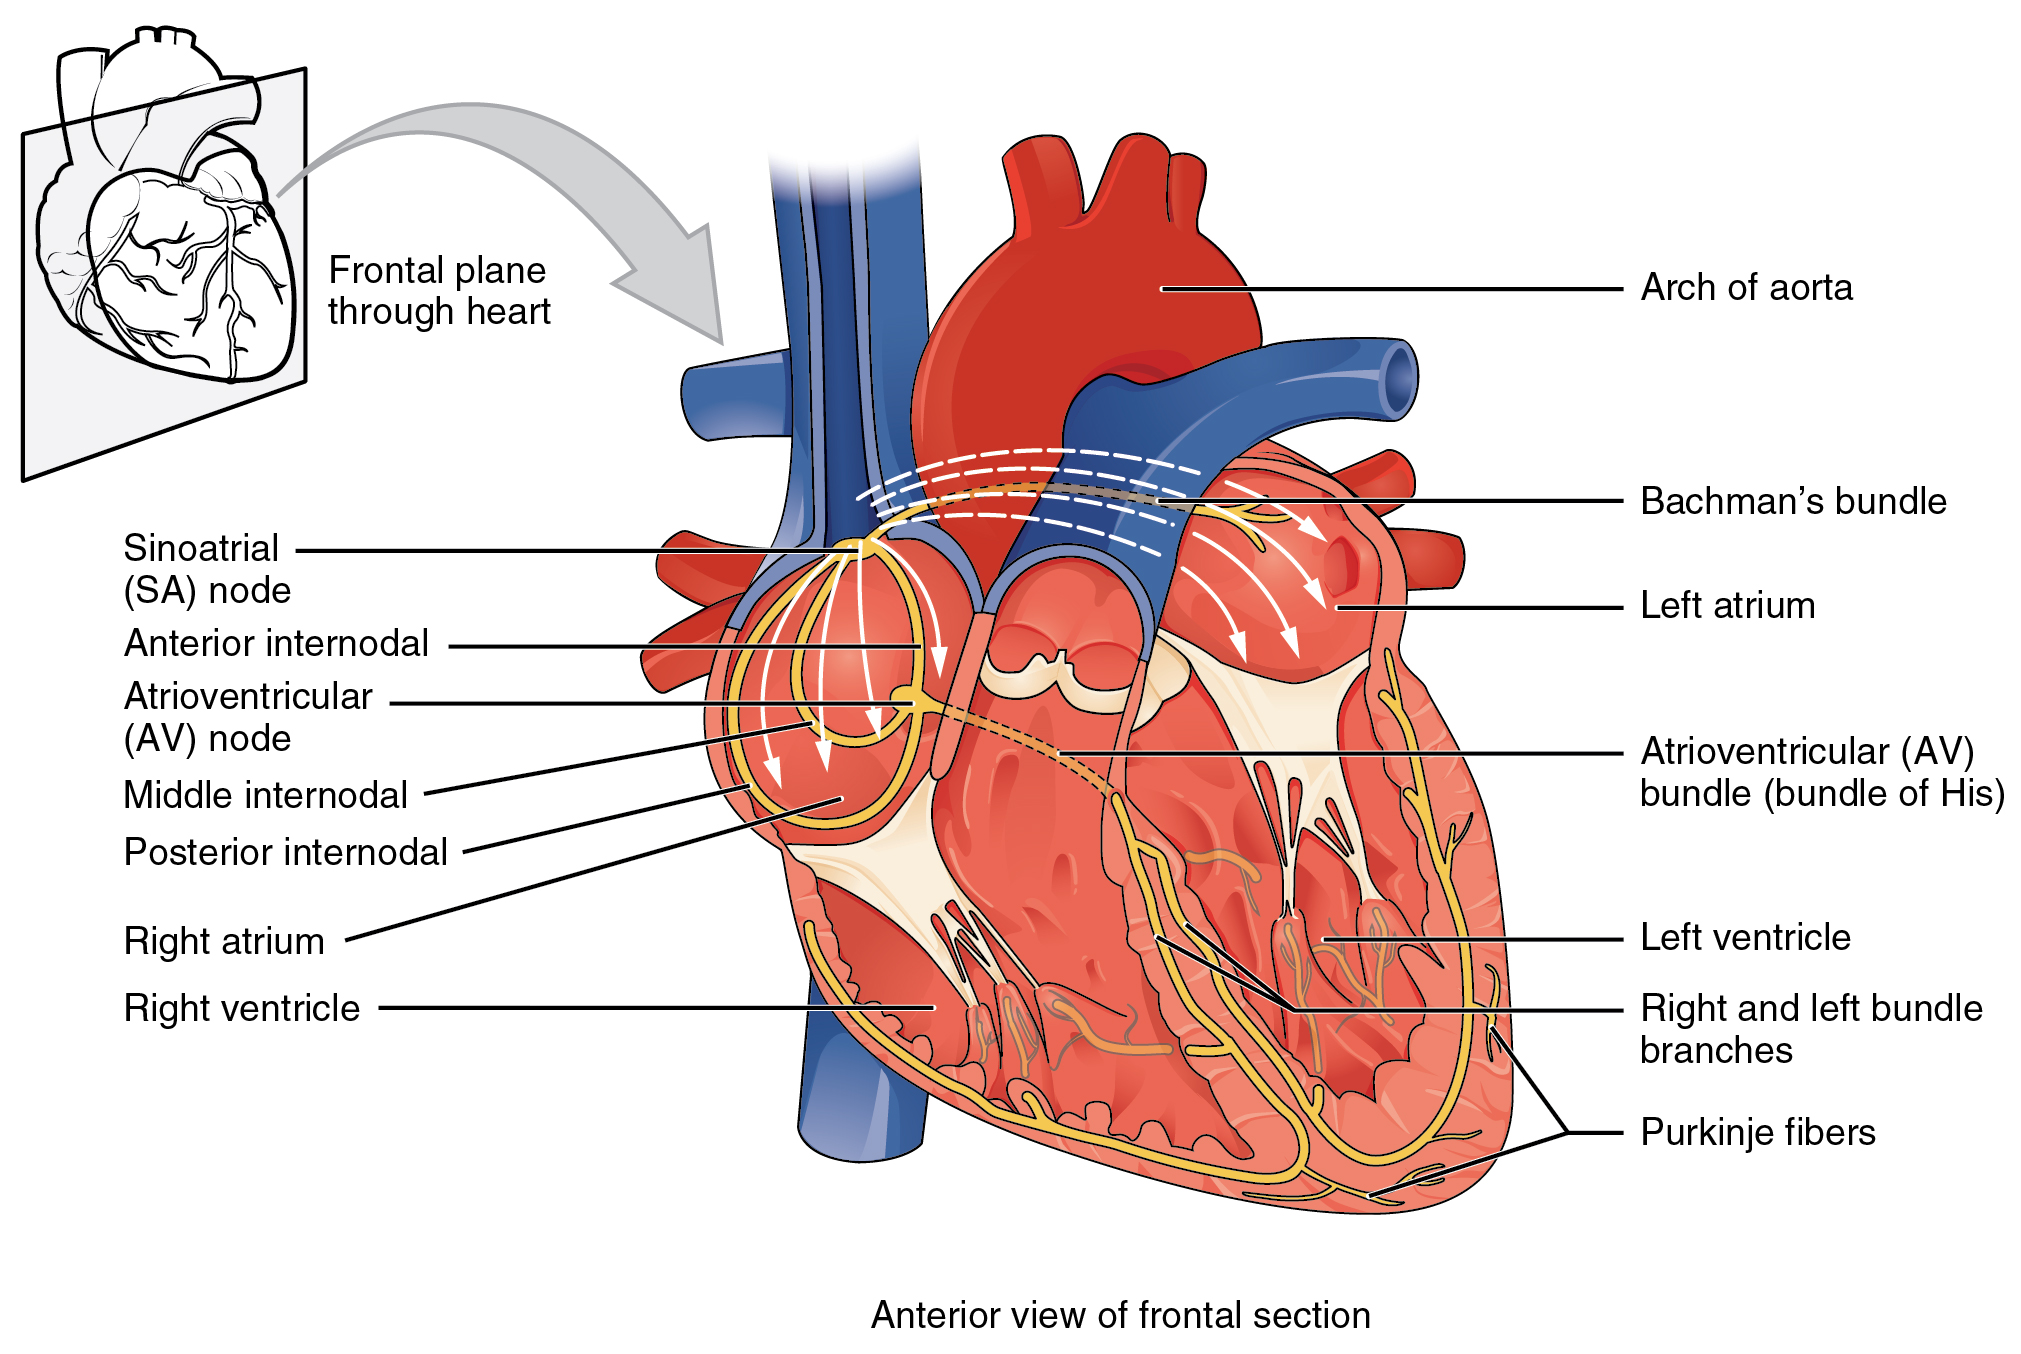 cardiac muscle labeled diagram lewis dot for silicon 19 2 and electrical activity anatomy physiology this image shows the anterior view of frontal section heart with major